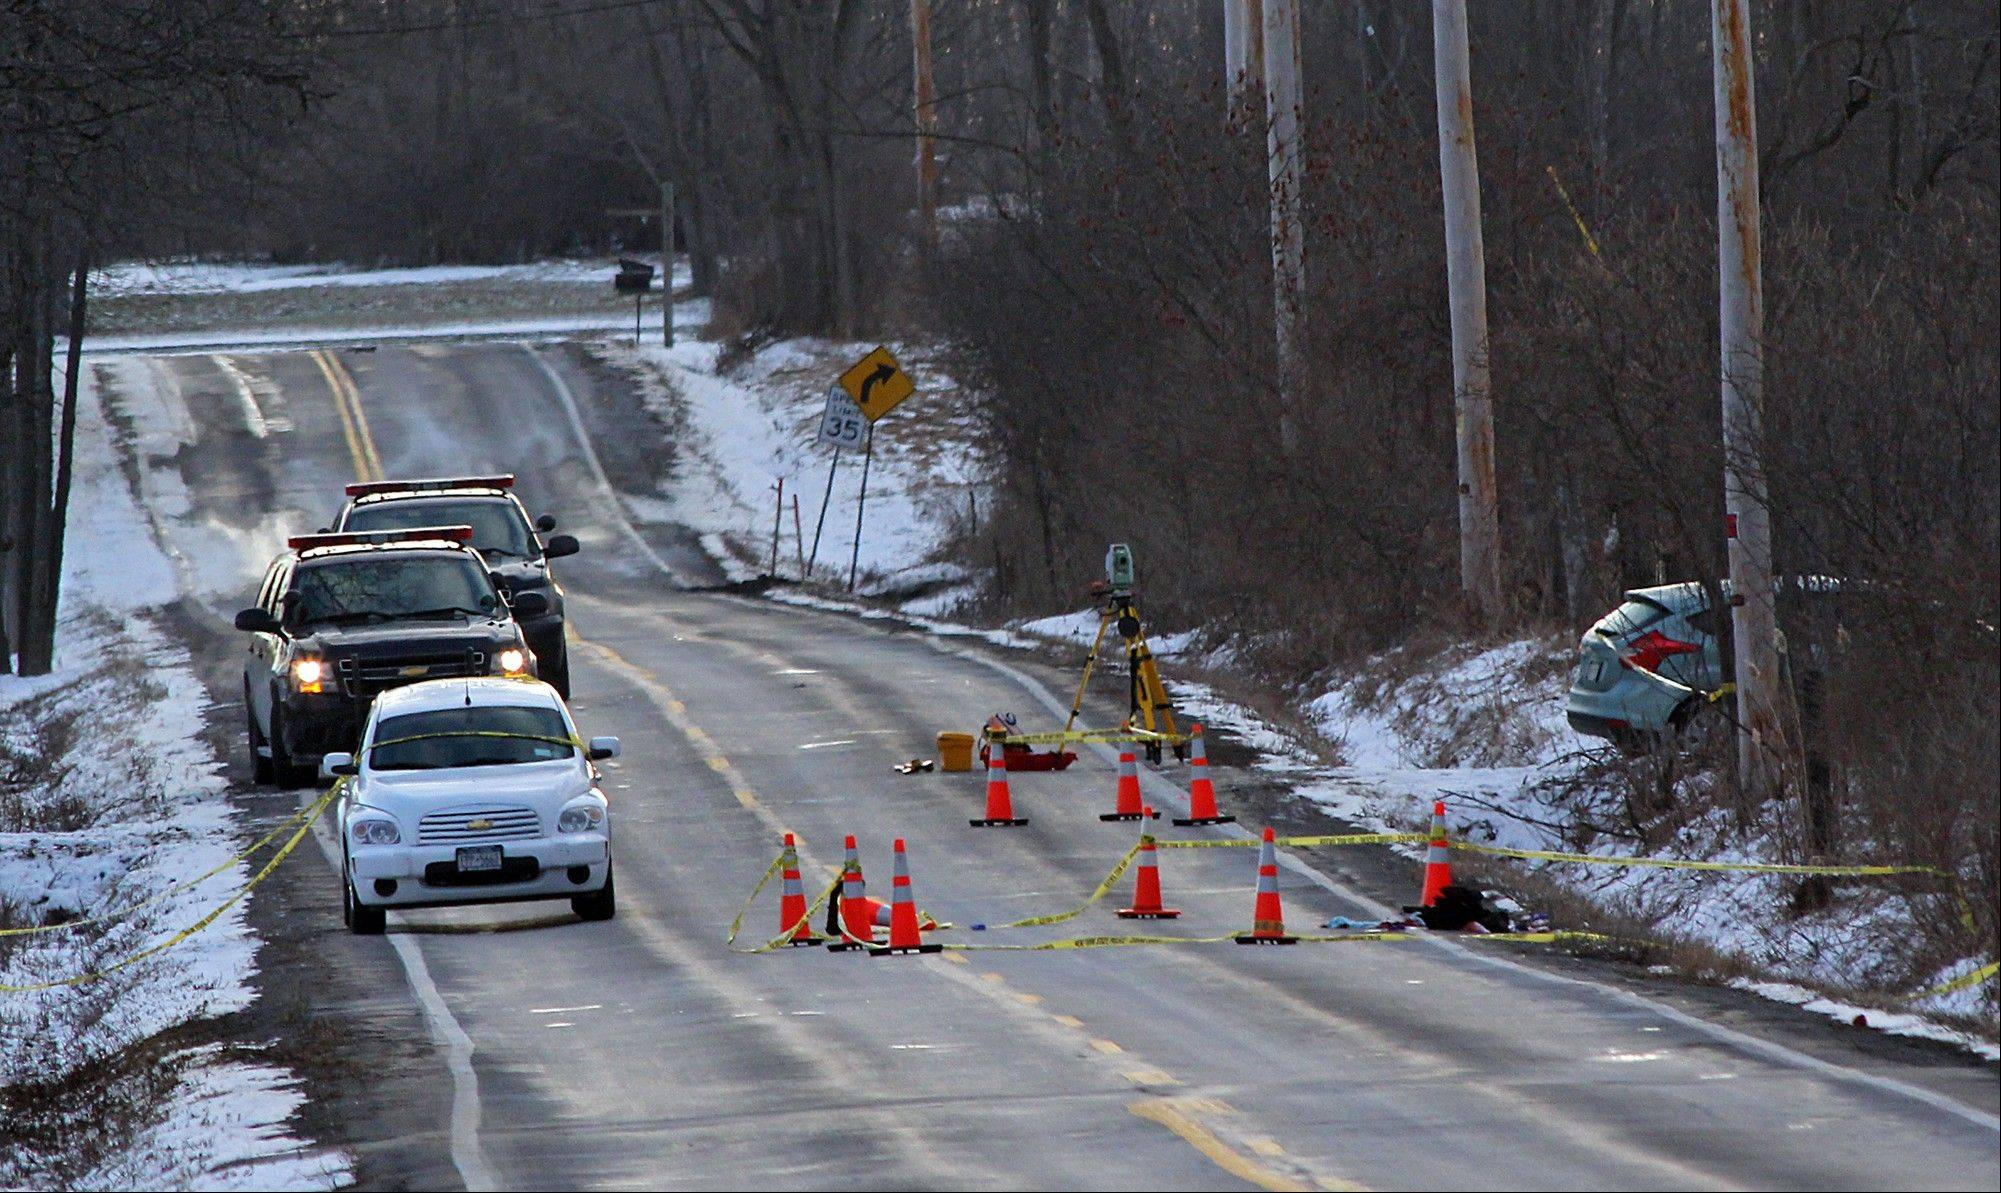 New York State Police investigate a car Friday involved in a fatal carjacking on Verplank Road, Clay, N.Y.